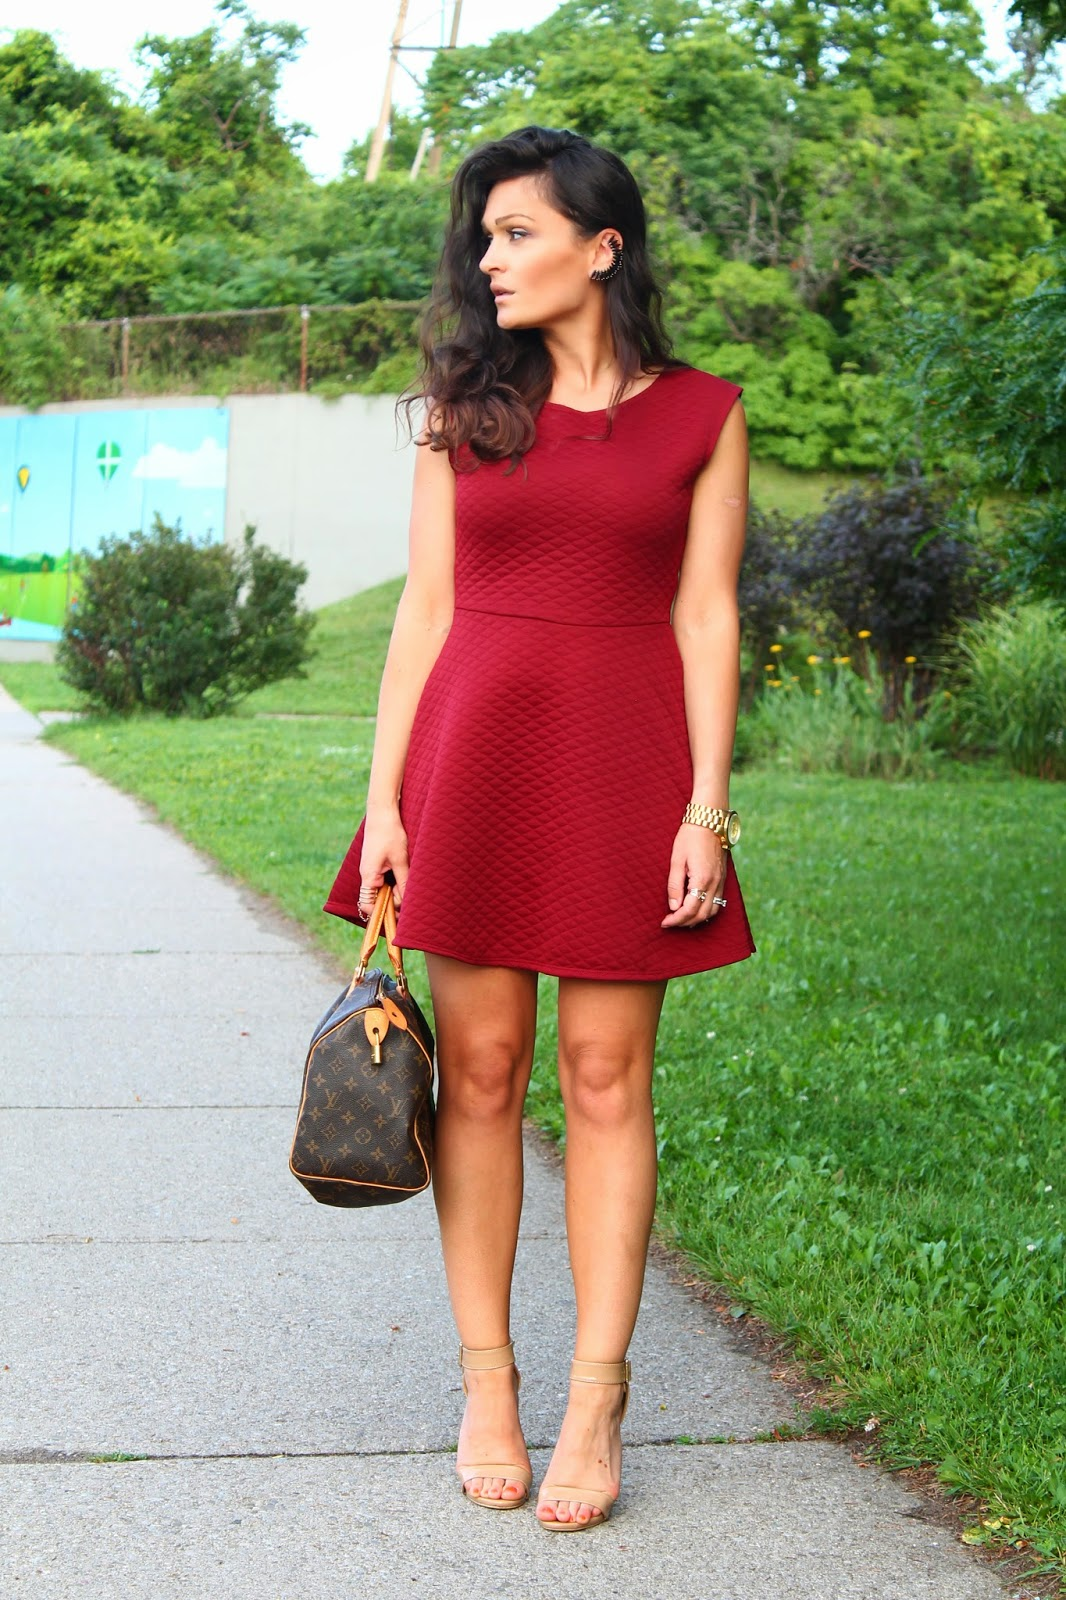 Maroon dress, burgundy dress, skater dress, maroon skater dress, summer  burgundy dress, how to wear a skater dress, blogerke, mini haljine, bordo haljina, nude sandals, louis vuitton speedy, canadian fashion blogger, Toronto street style